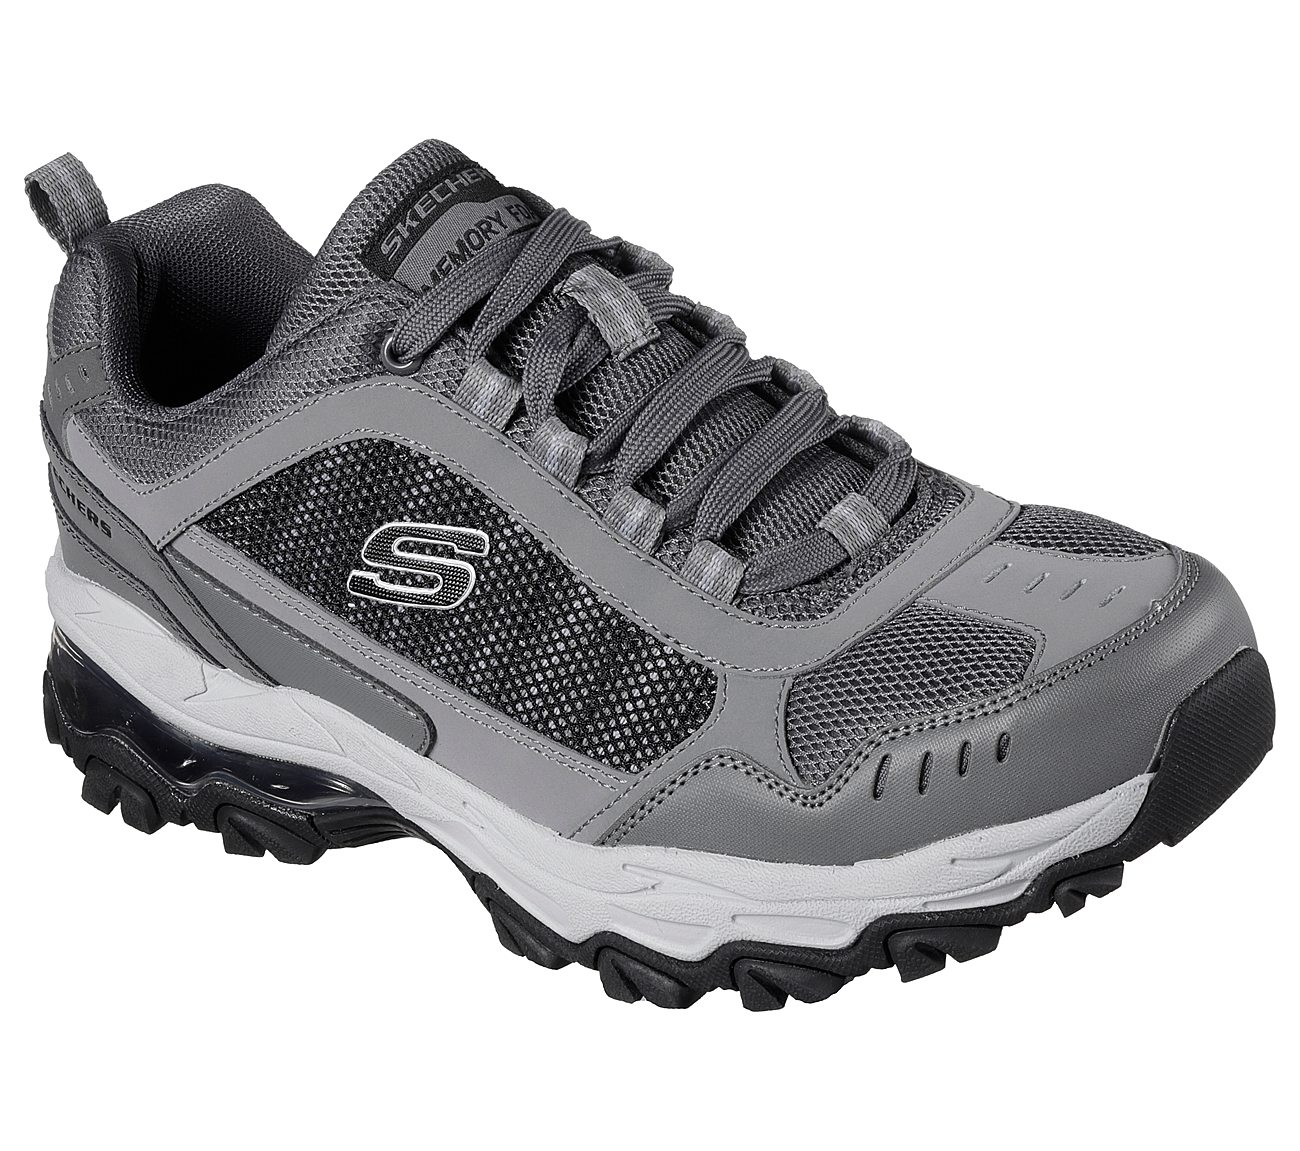 mens walking shoe skechers after burn m fit memory foam sole